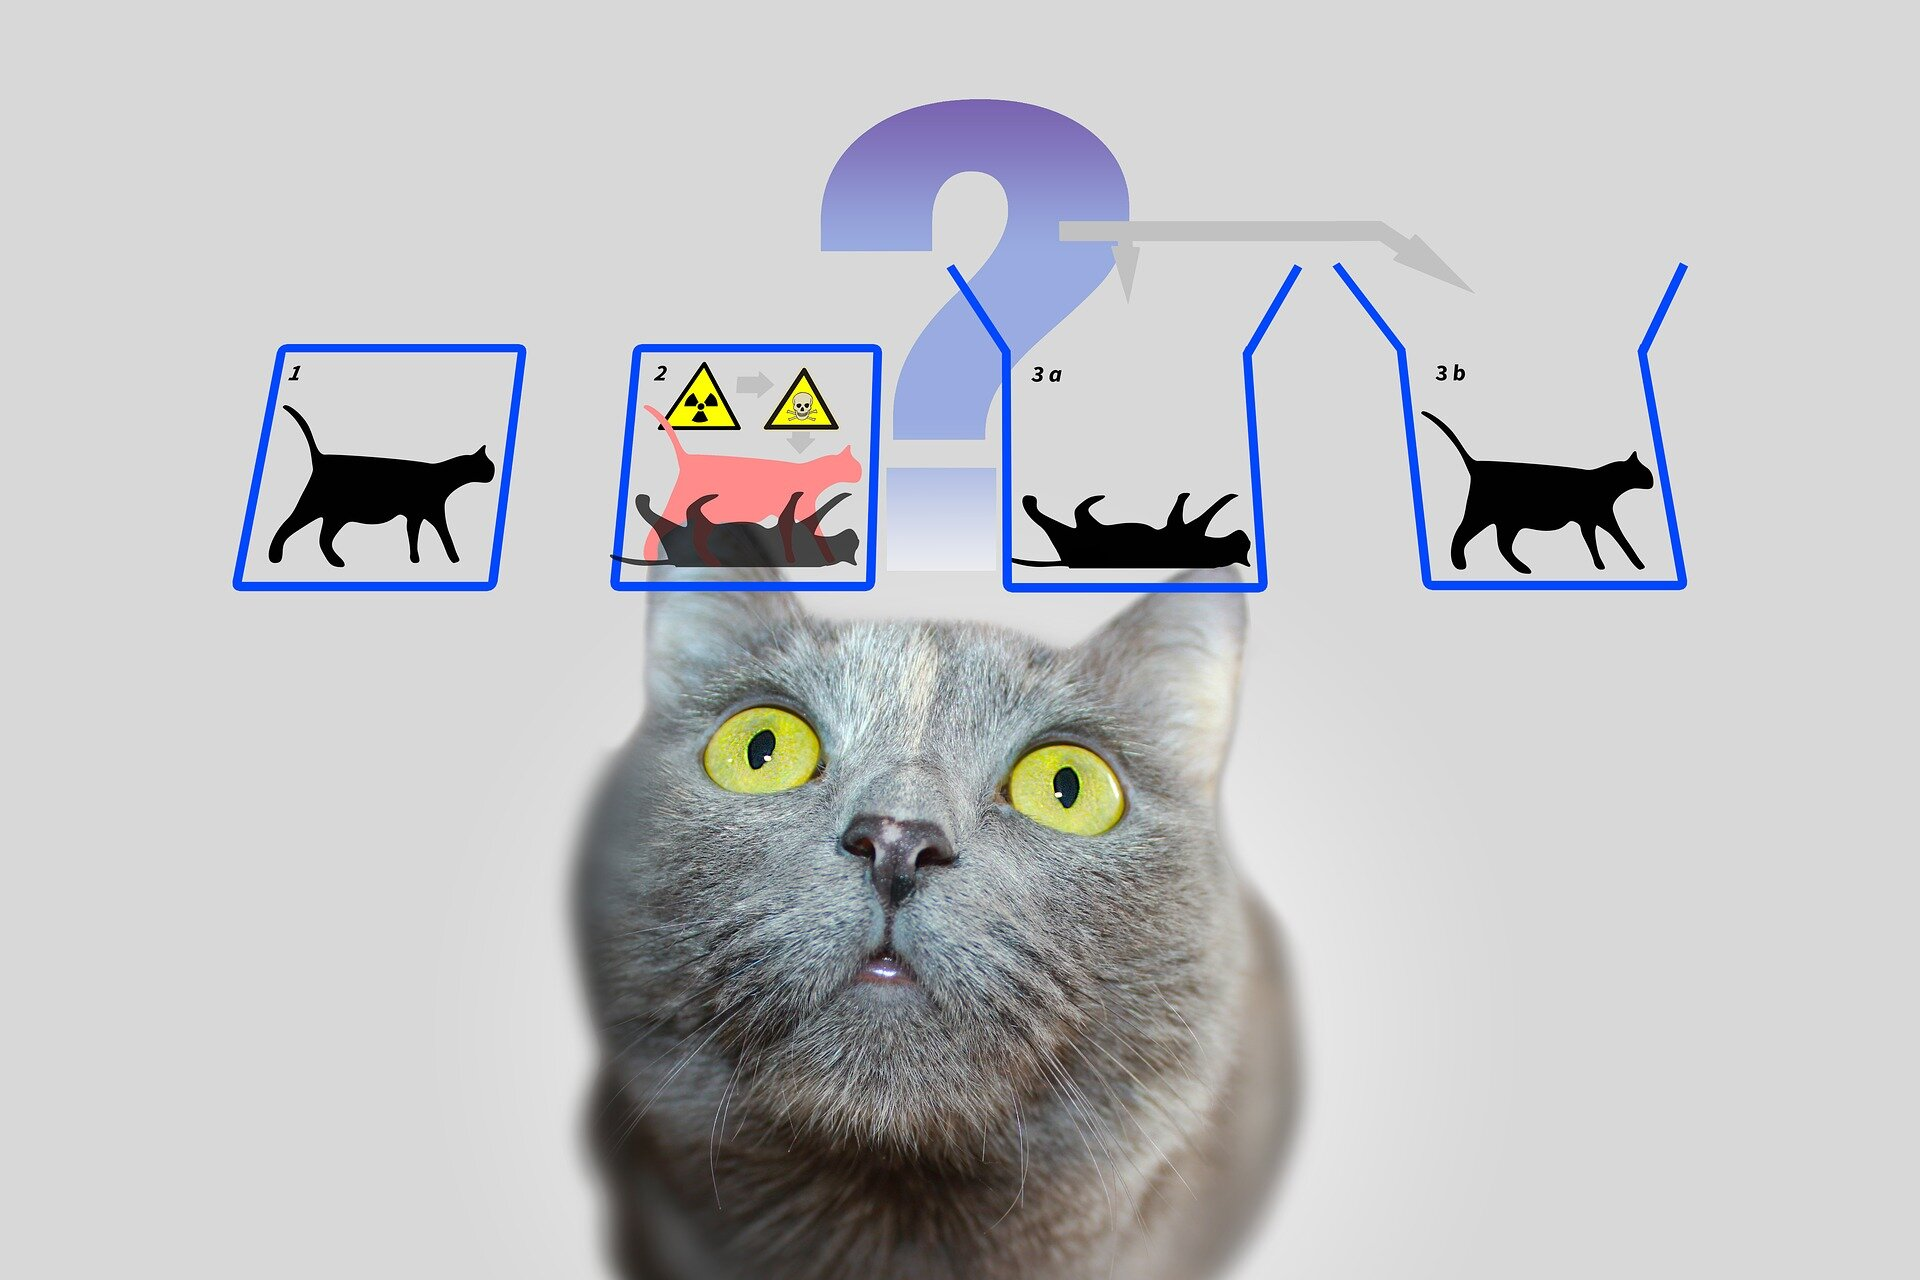 Deconstructing Schrödinger's cat